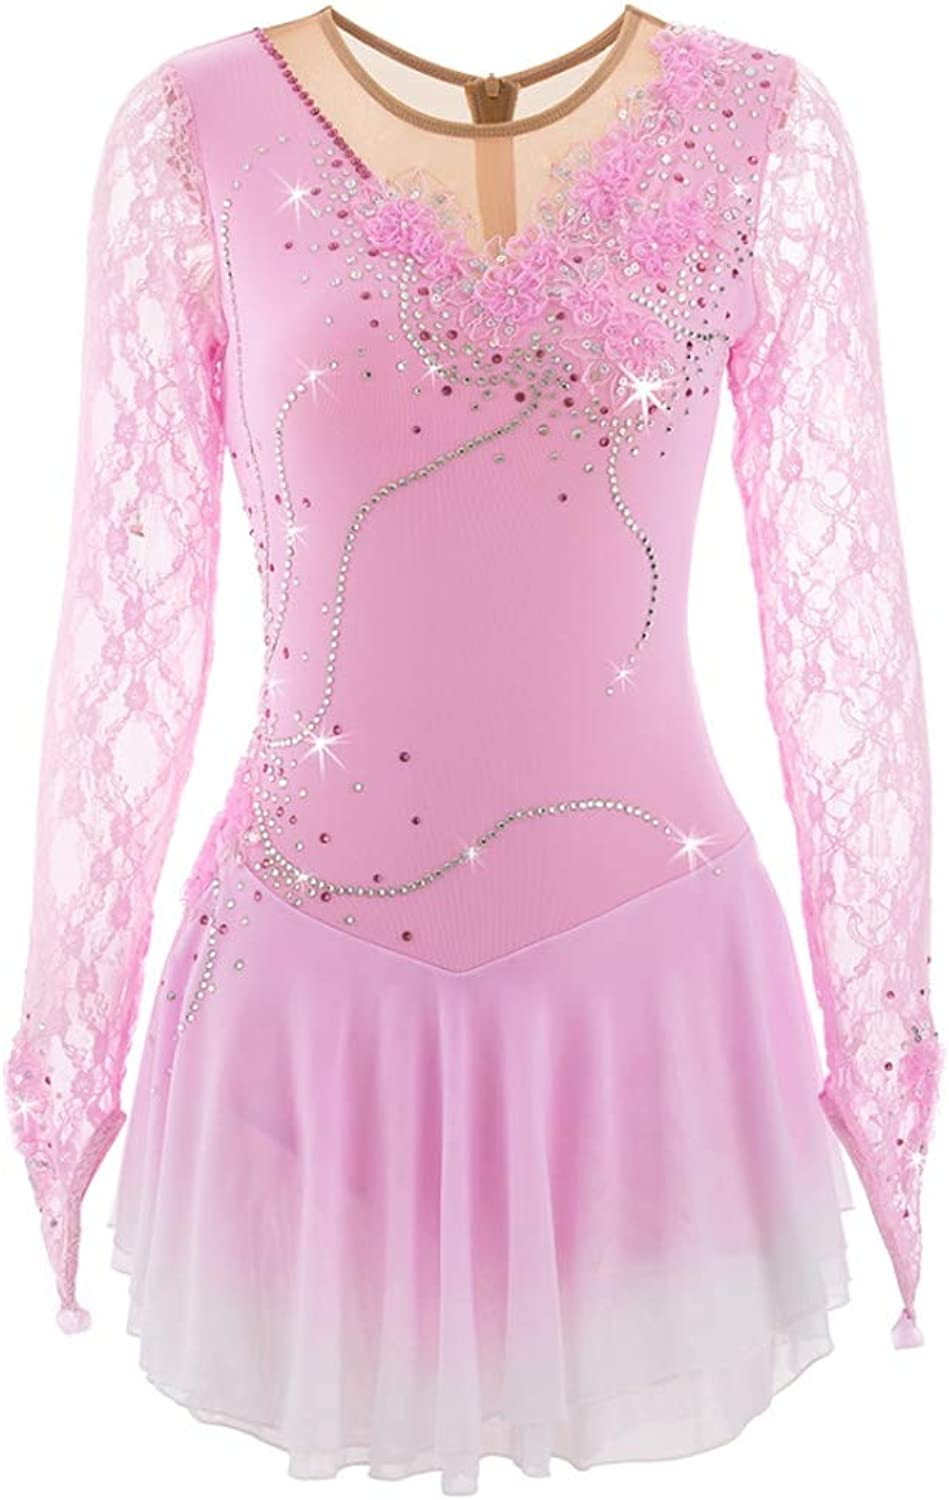 YunNR Girls' Figure Skating Dress Performance Costume Lace Sleeve Women's Ice Skating Dress Spandex High Elasticity Rhinestone Sequin Competition Skating Costume